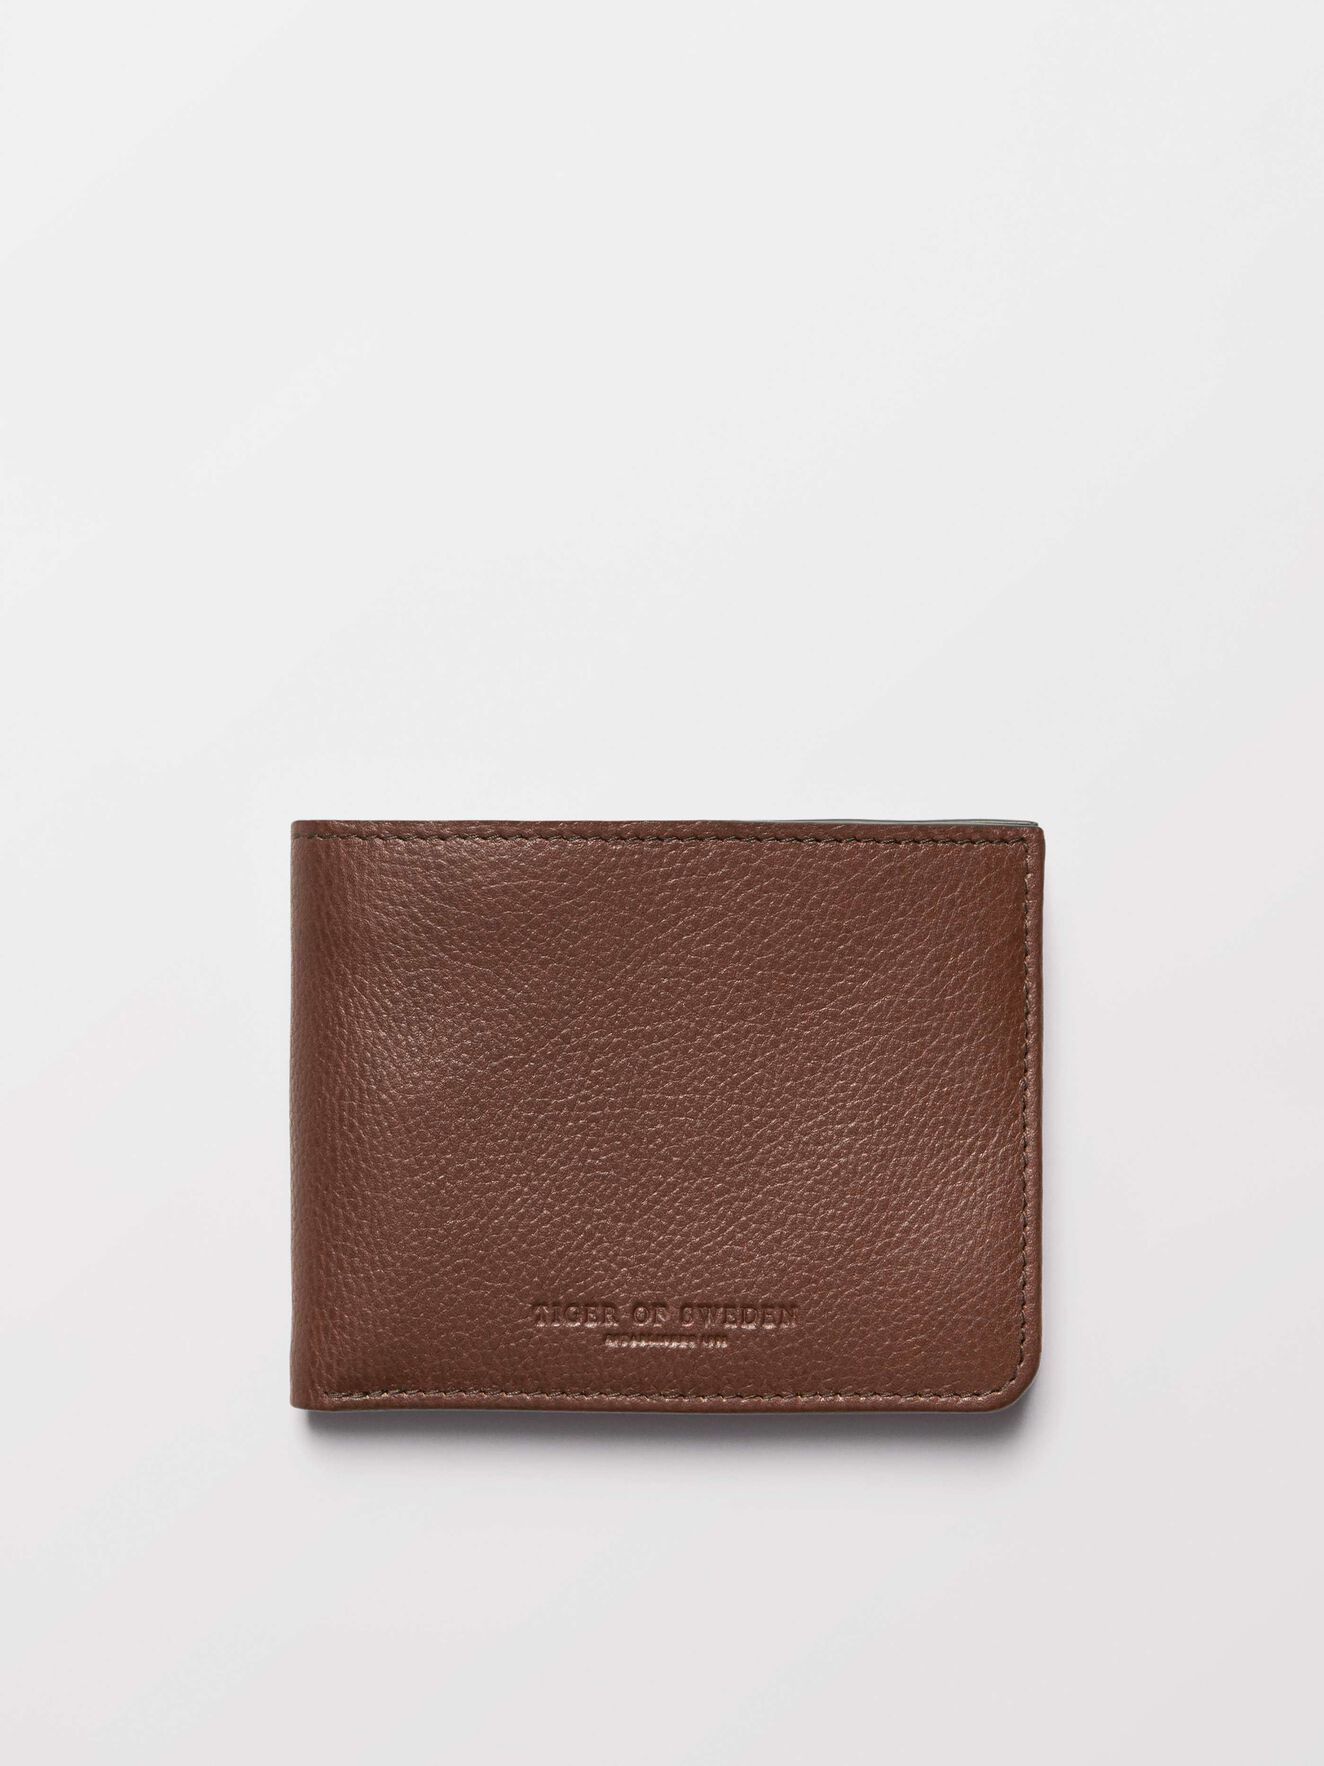 Chabaud Wallet in Medium Brown from Tiger of Sweden